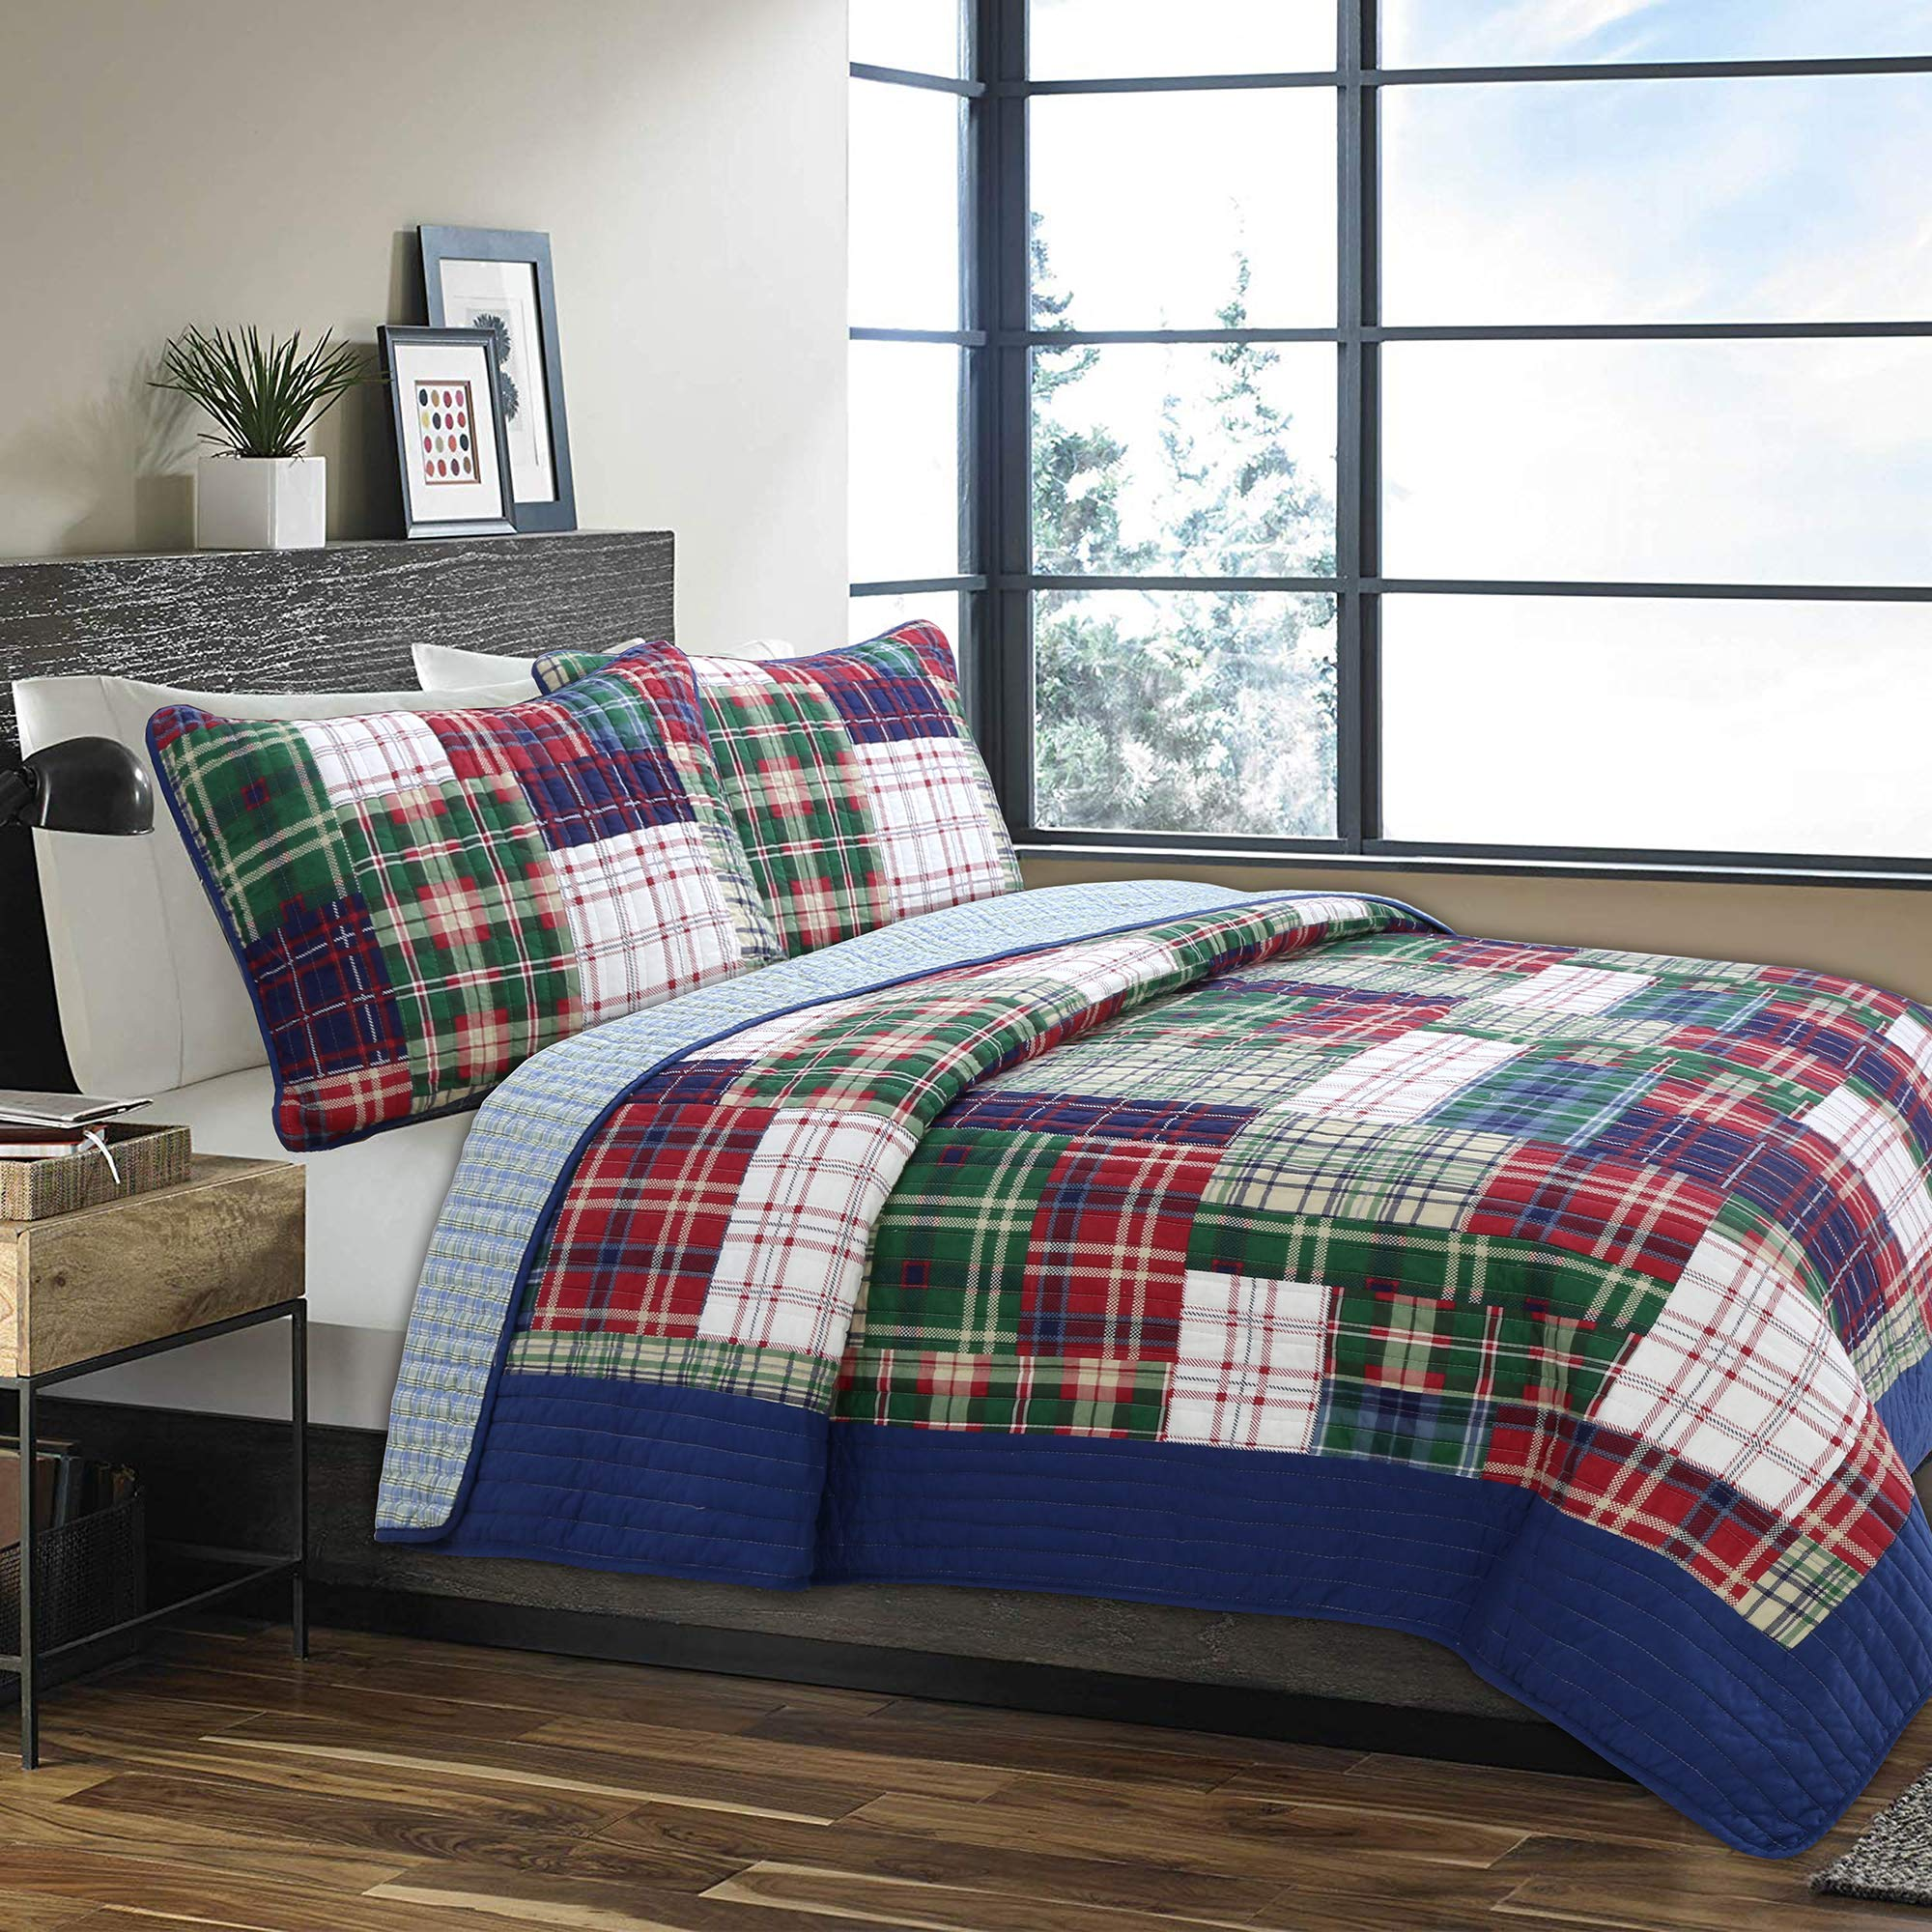 Cozy Line Home Fashions Nate Patchwork Navy/Blue/Green/Red Plaid Cotton Quilt Bedding Set, Reversible Coverlet,Bedspread for Boy/Men/Him (England Patchwork, Twin - 2 Piece) by Cozy Line Home Fashions